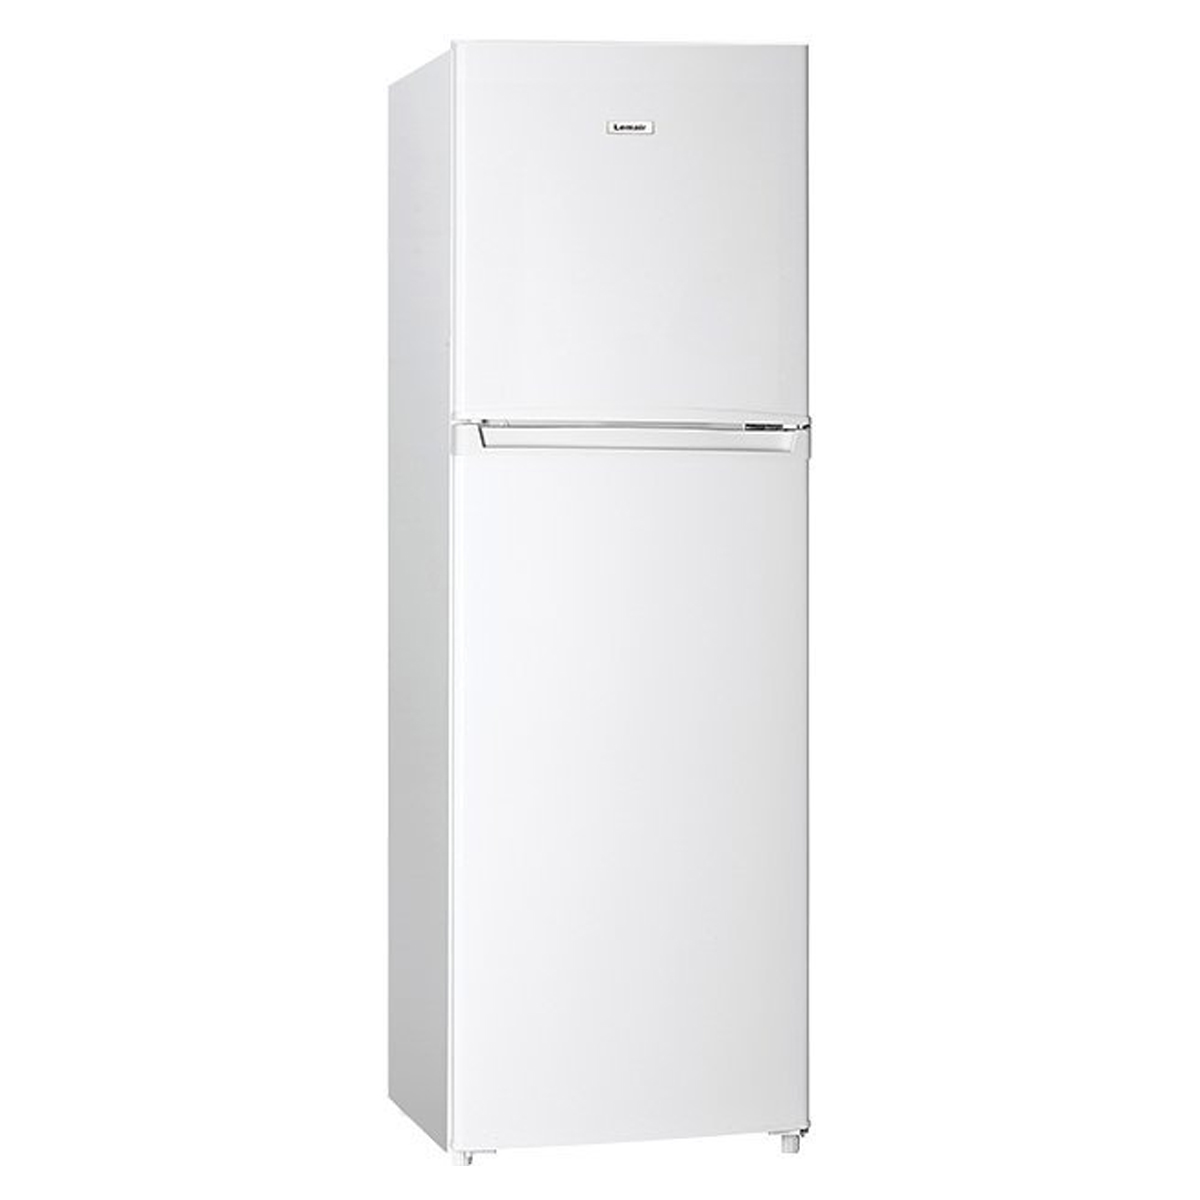 Lemair LTM268W 268Litres Top Mount Fridge 81995